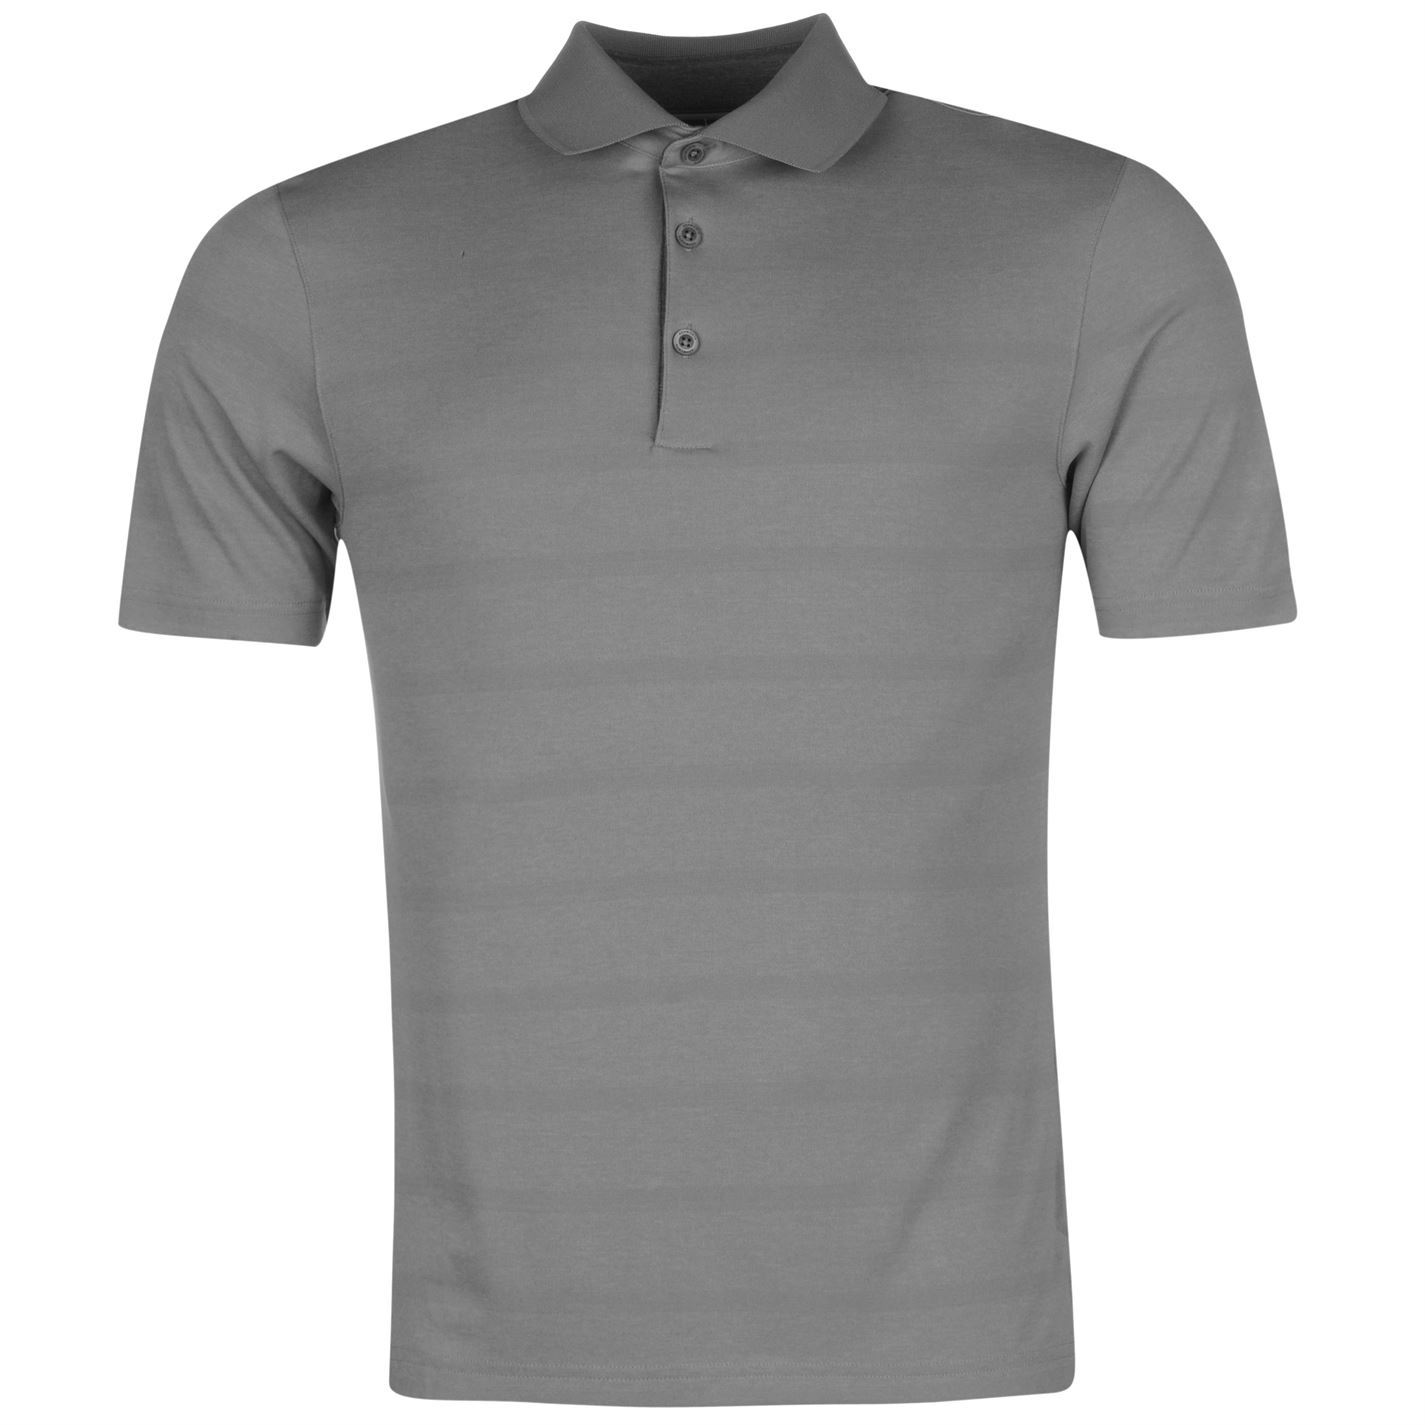 Tee off in this Ashworth Knit Polo Shirt - designed with Ez- Tec2  technology which offers you ventilation as well as moisture wicking  properties to keep you ... 7482bf0cd52d